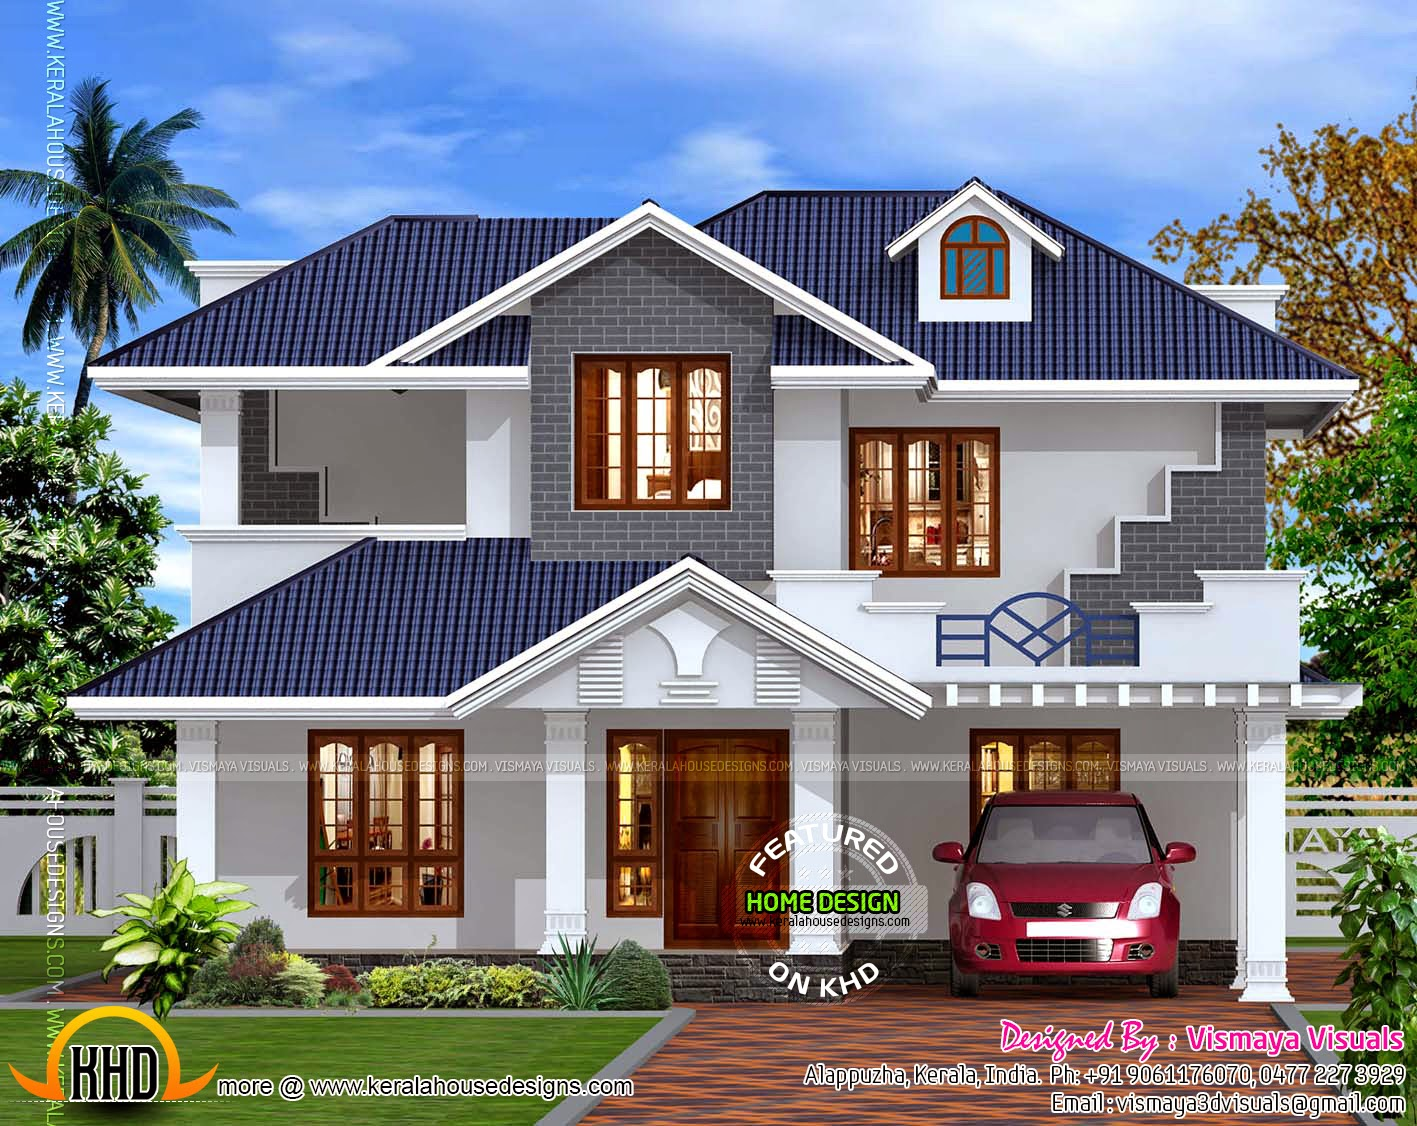 Kerala Style Villa Exterior Kerala Home Design And Floor Plans